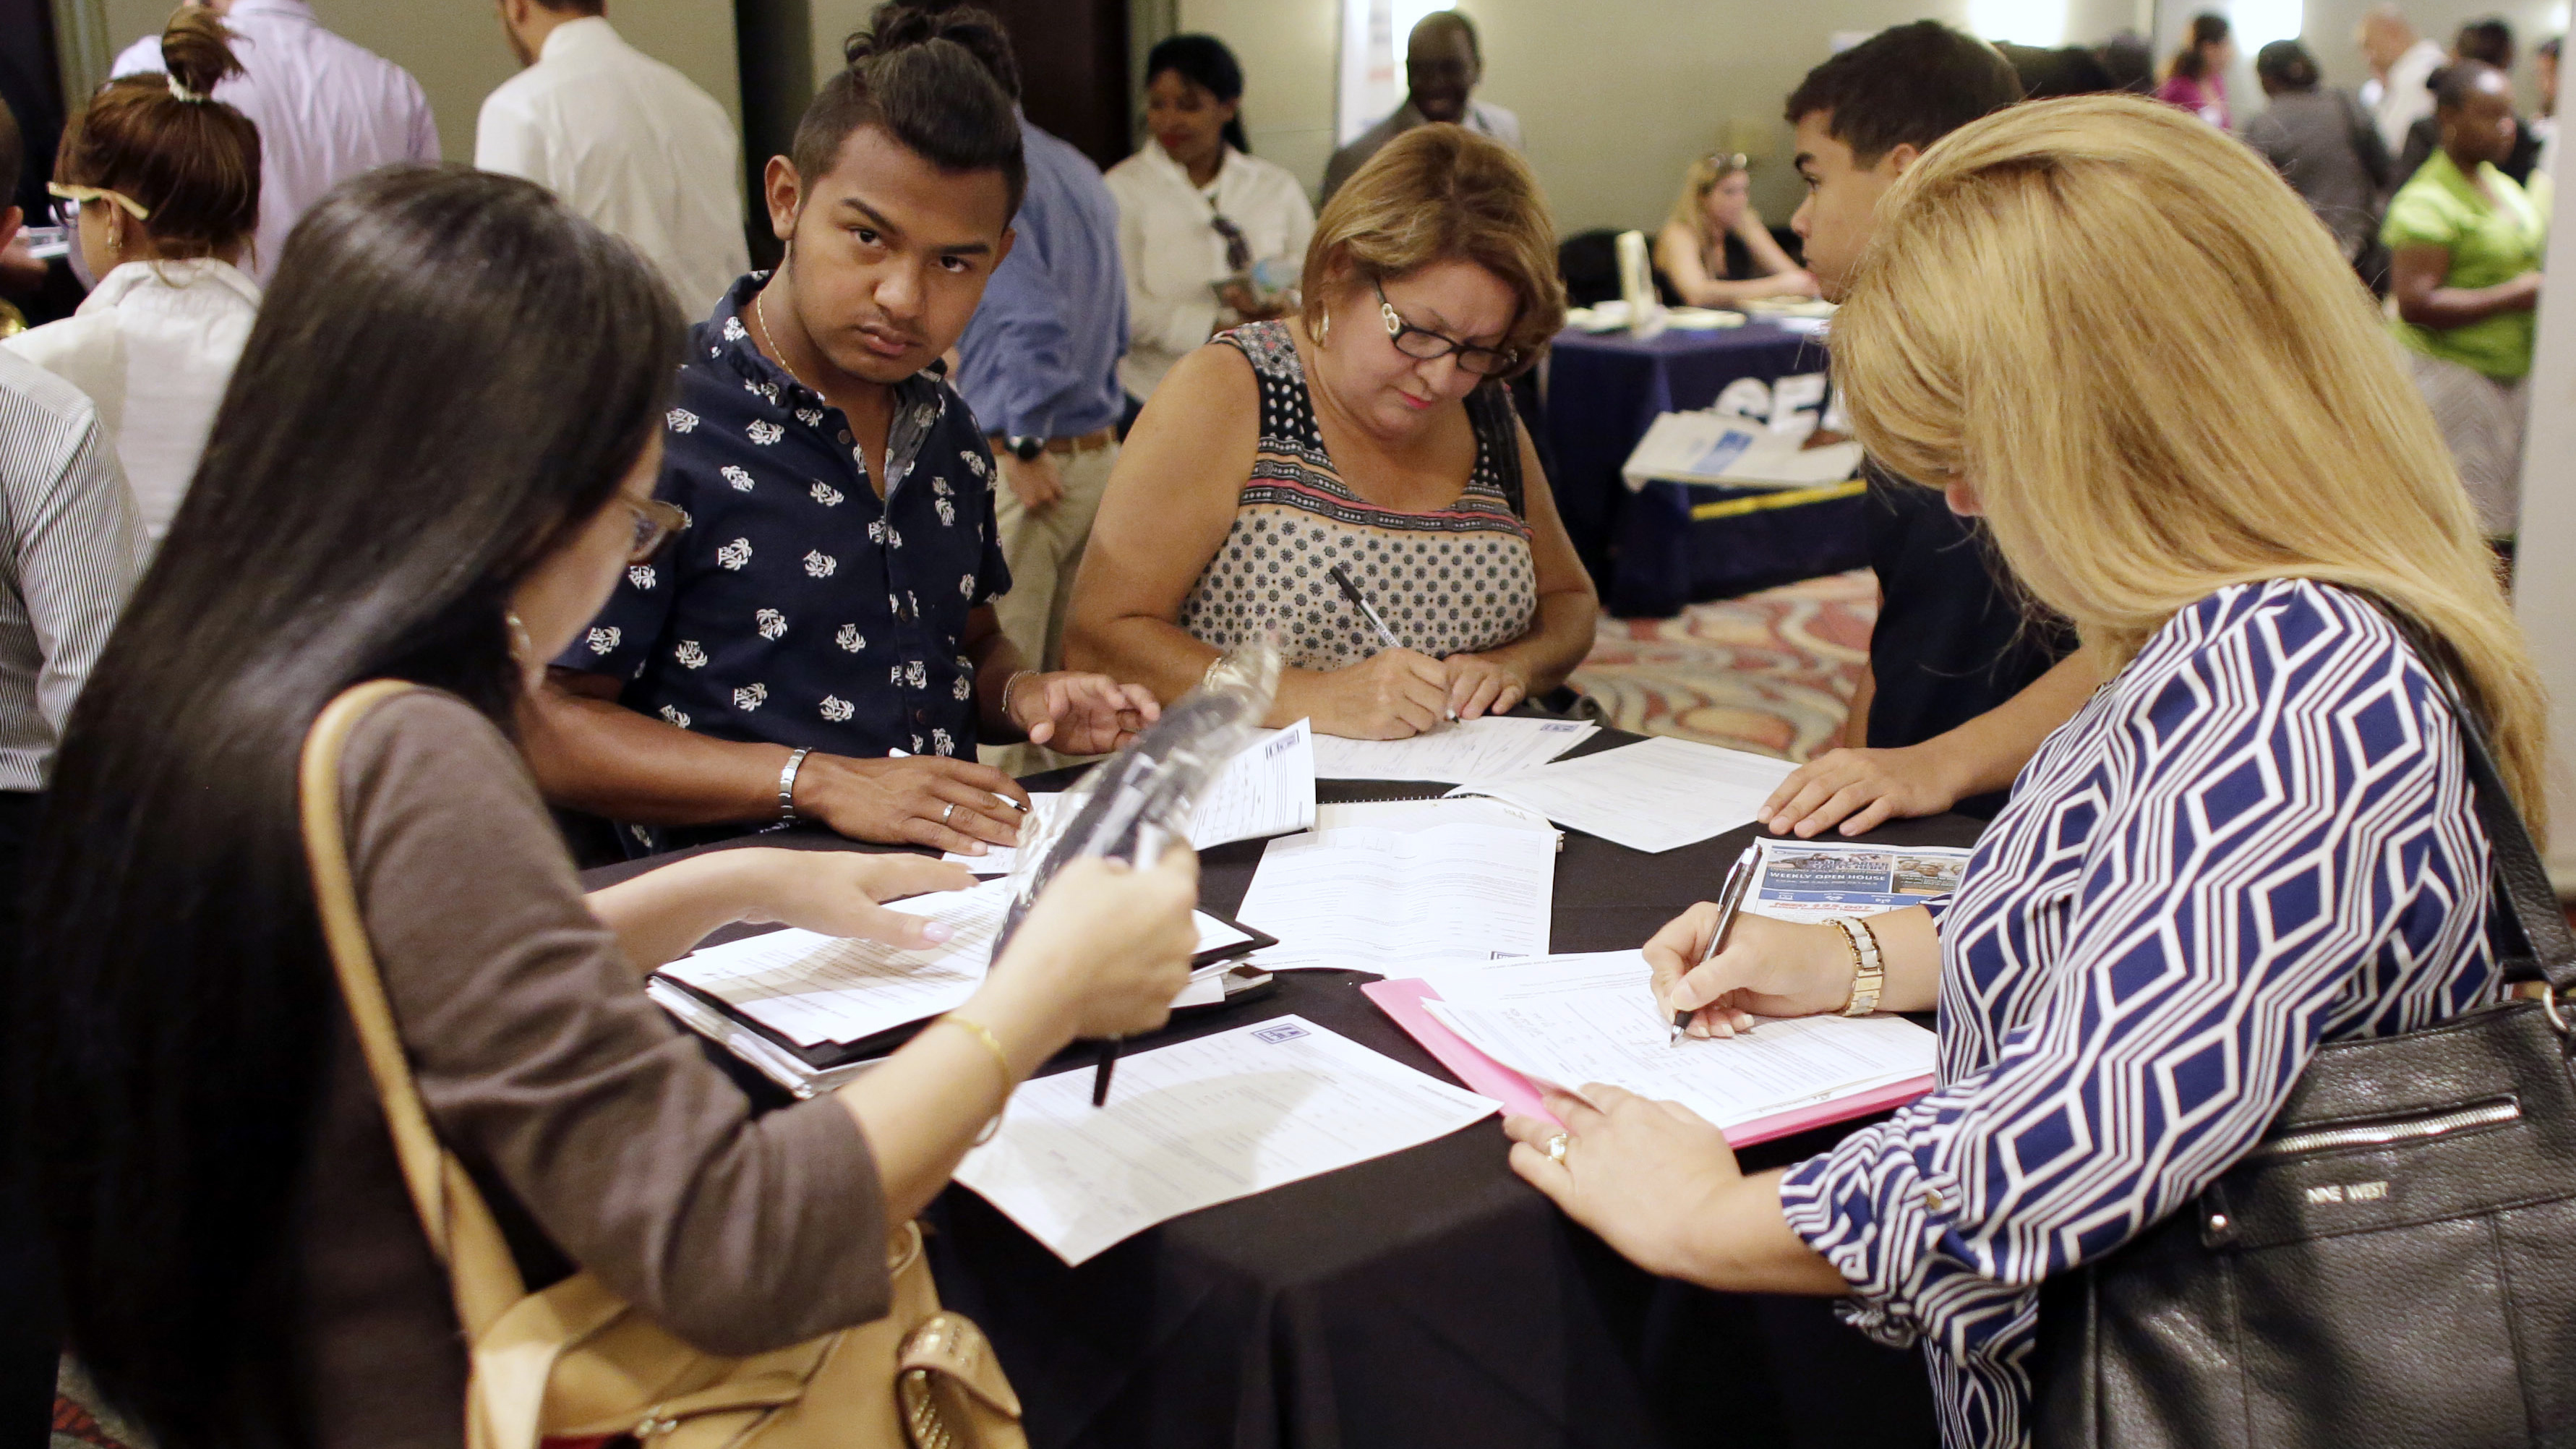 People fill out applications at a job fair in Miami Lakes, Fla., in July. The presidential candidates will be watching Friday's monthly Labor Department report for talking points on the unemployment rate and new and jobs.